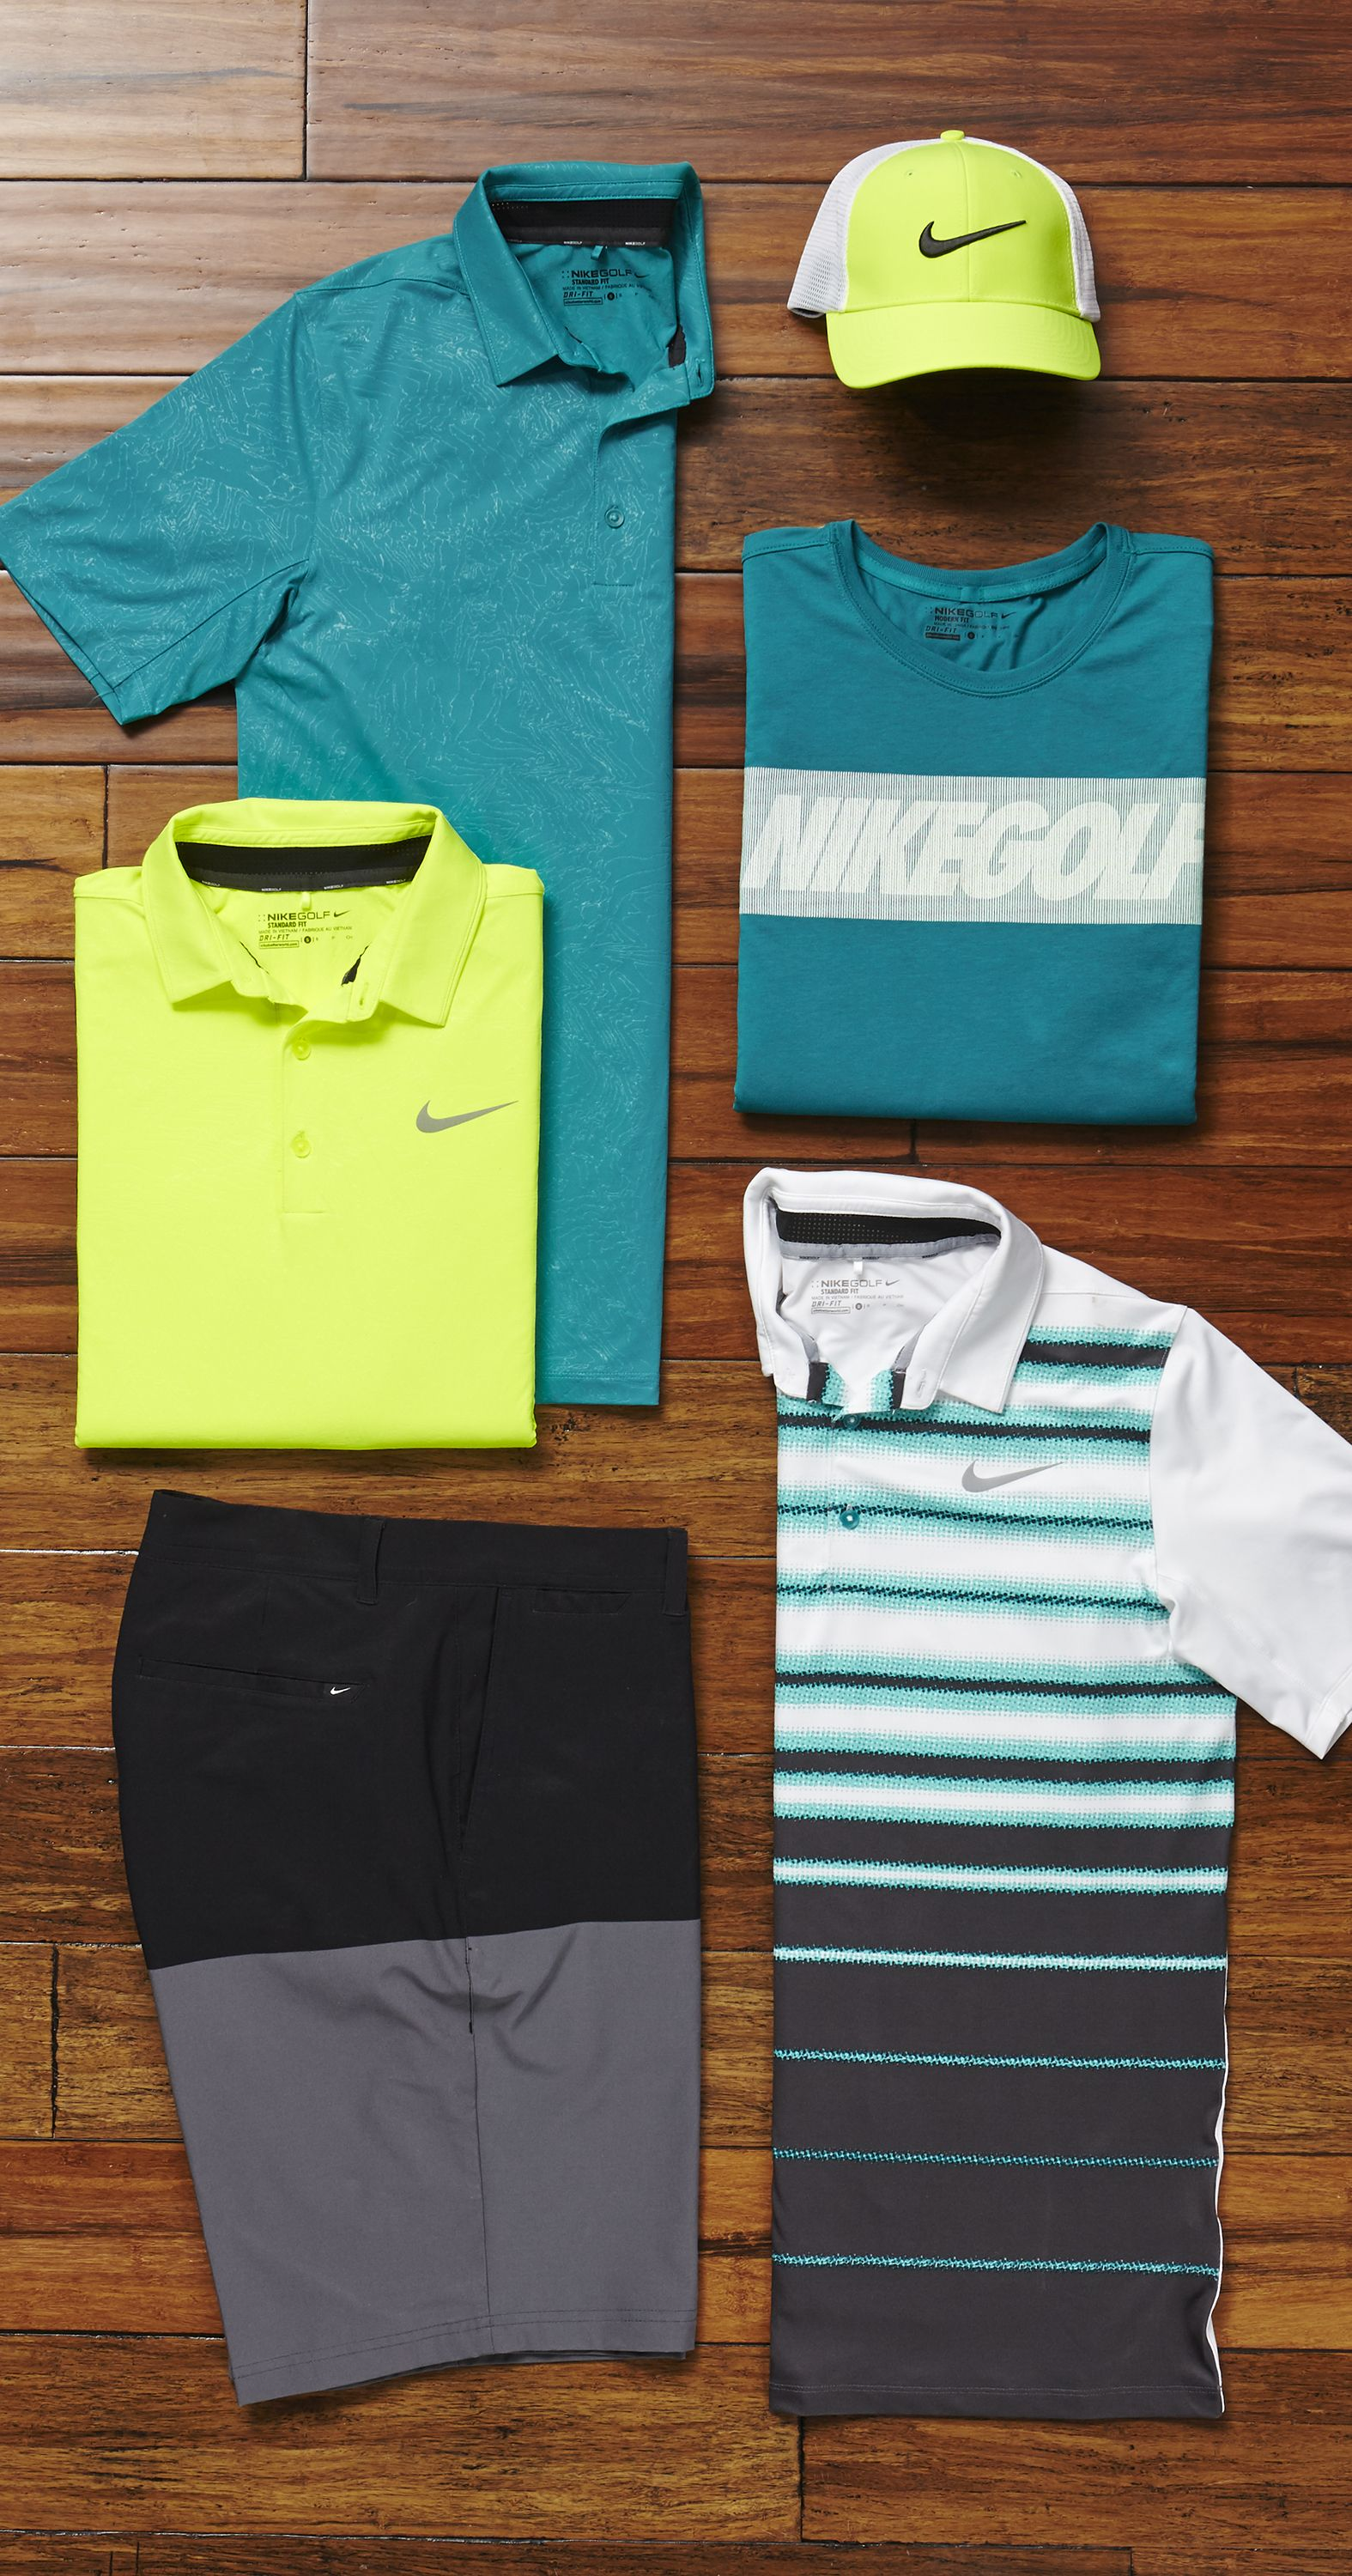 f8134996a0e63 Add to your on-course apparel collection with new styles from Nike Golf.